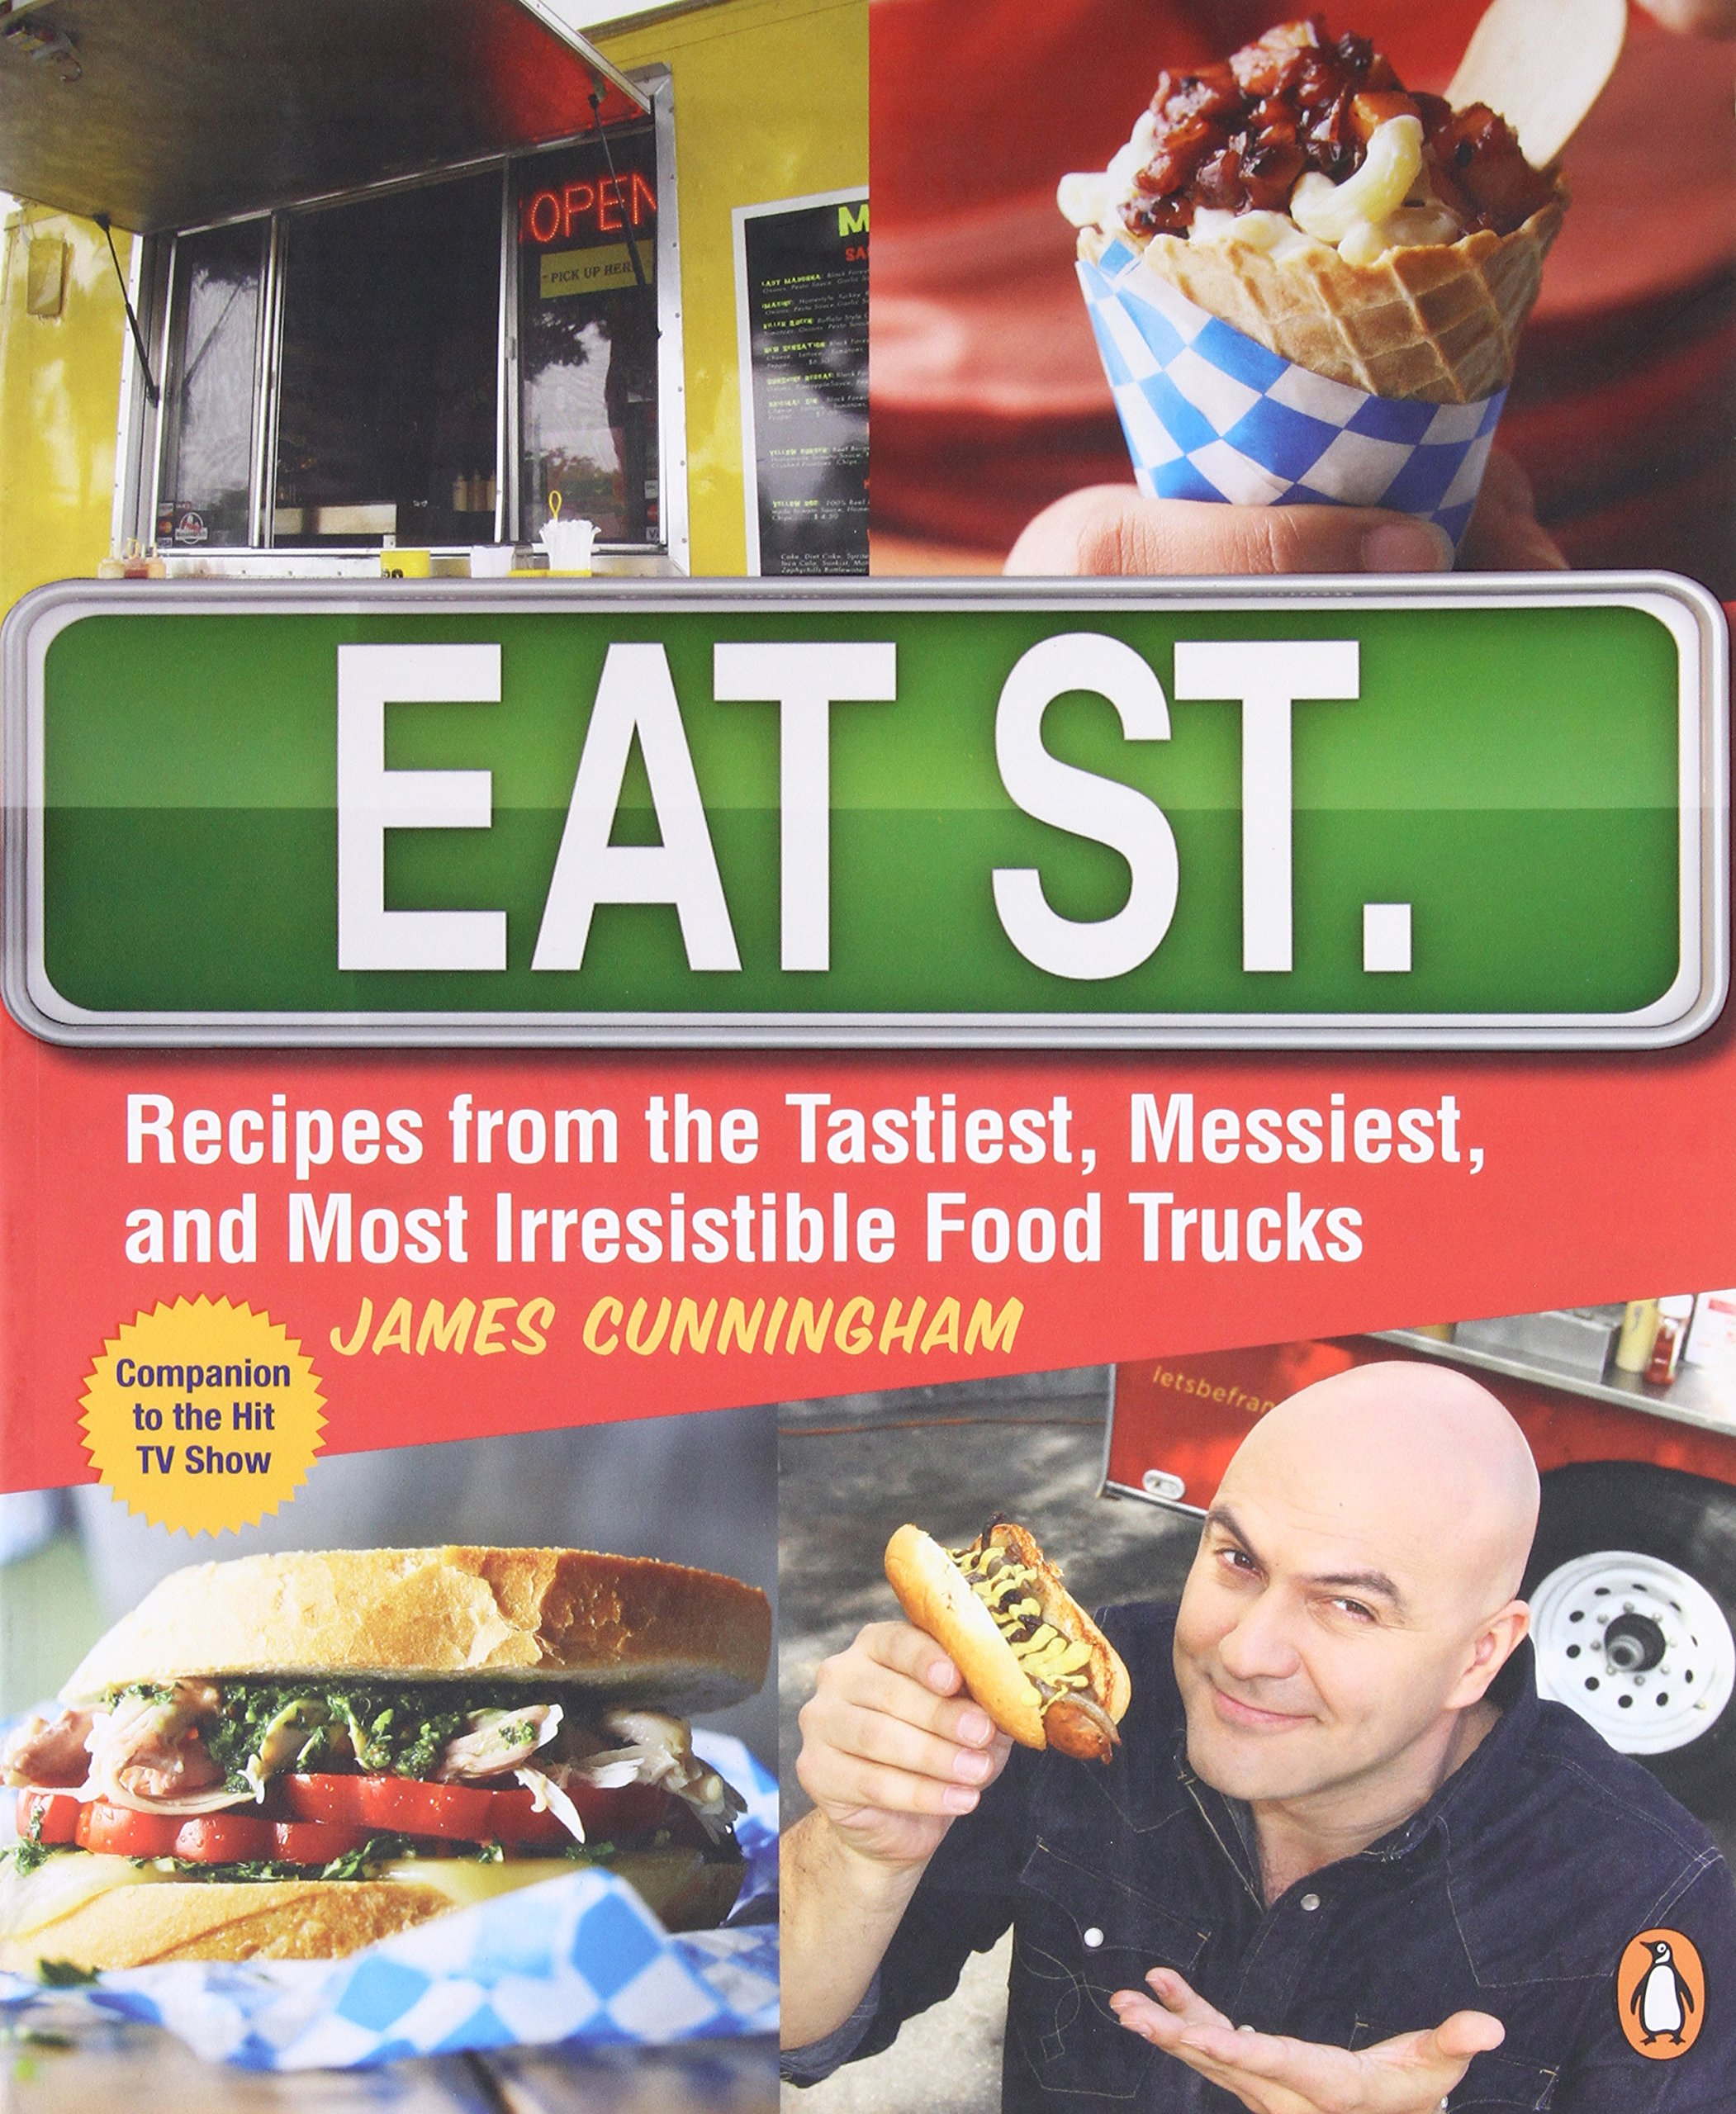 Eat street the tastiest messiest and most irresistible street food eat street the tastiest messiest and most irresistible street food james cunningham 9780143187363 amazon books forumfinder Gallery